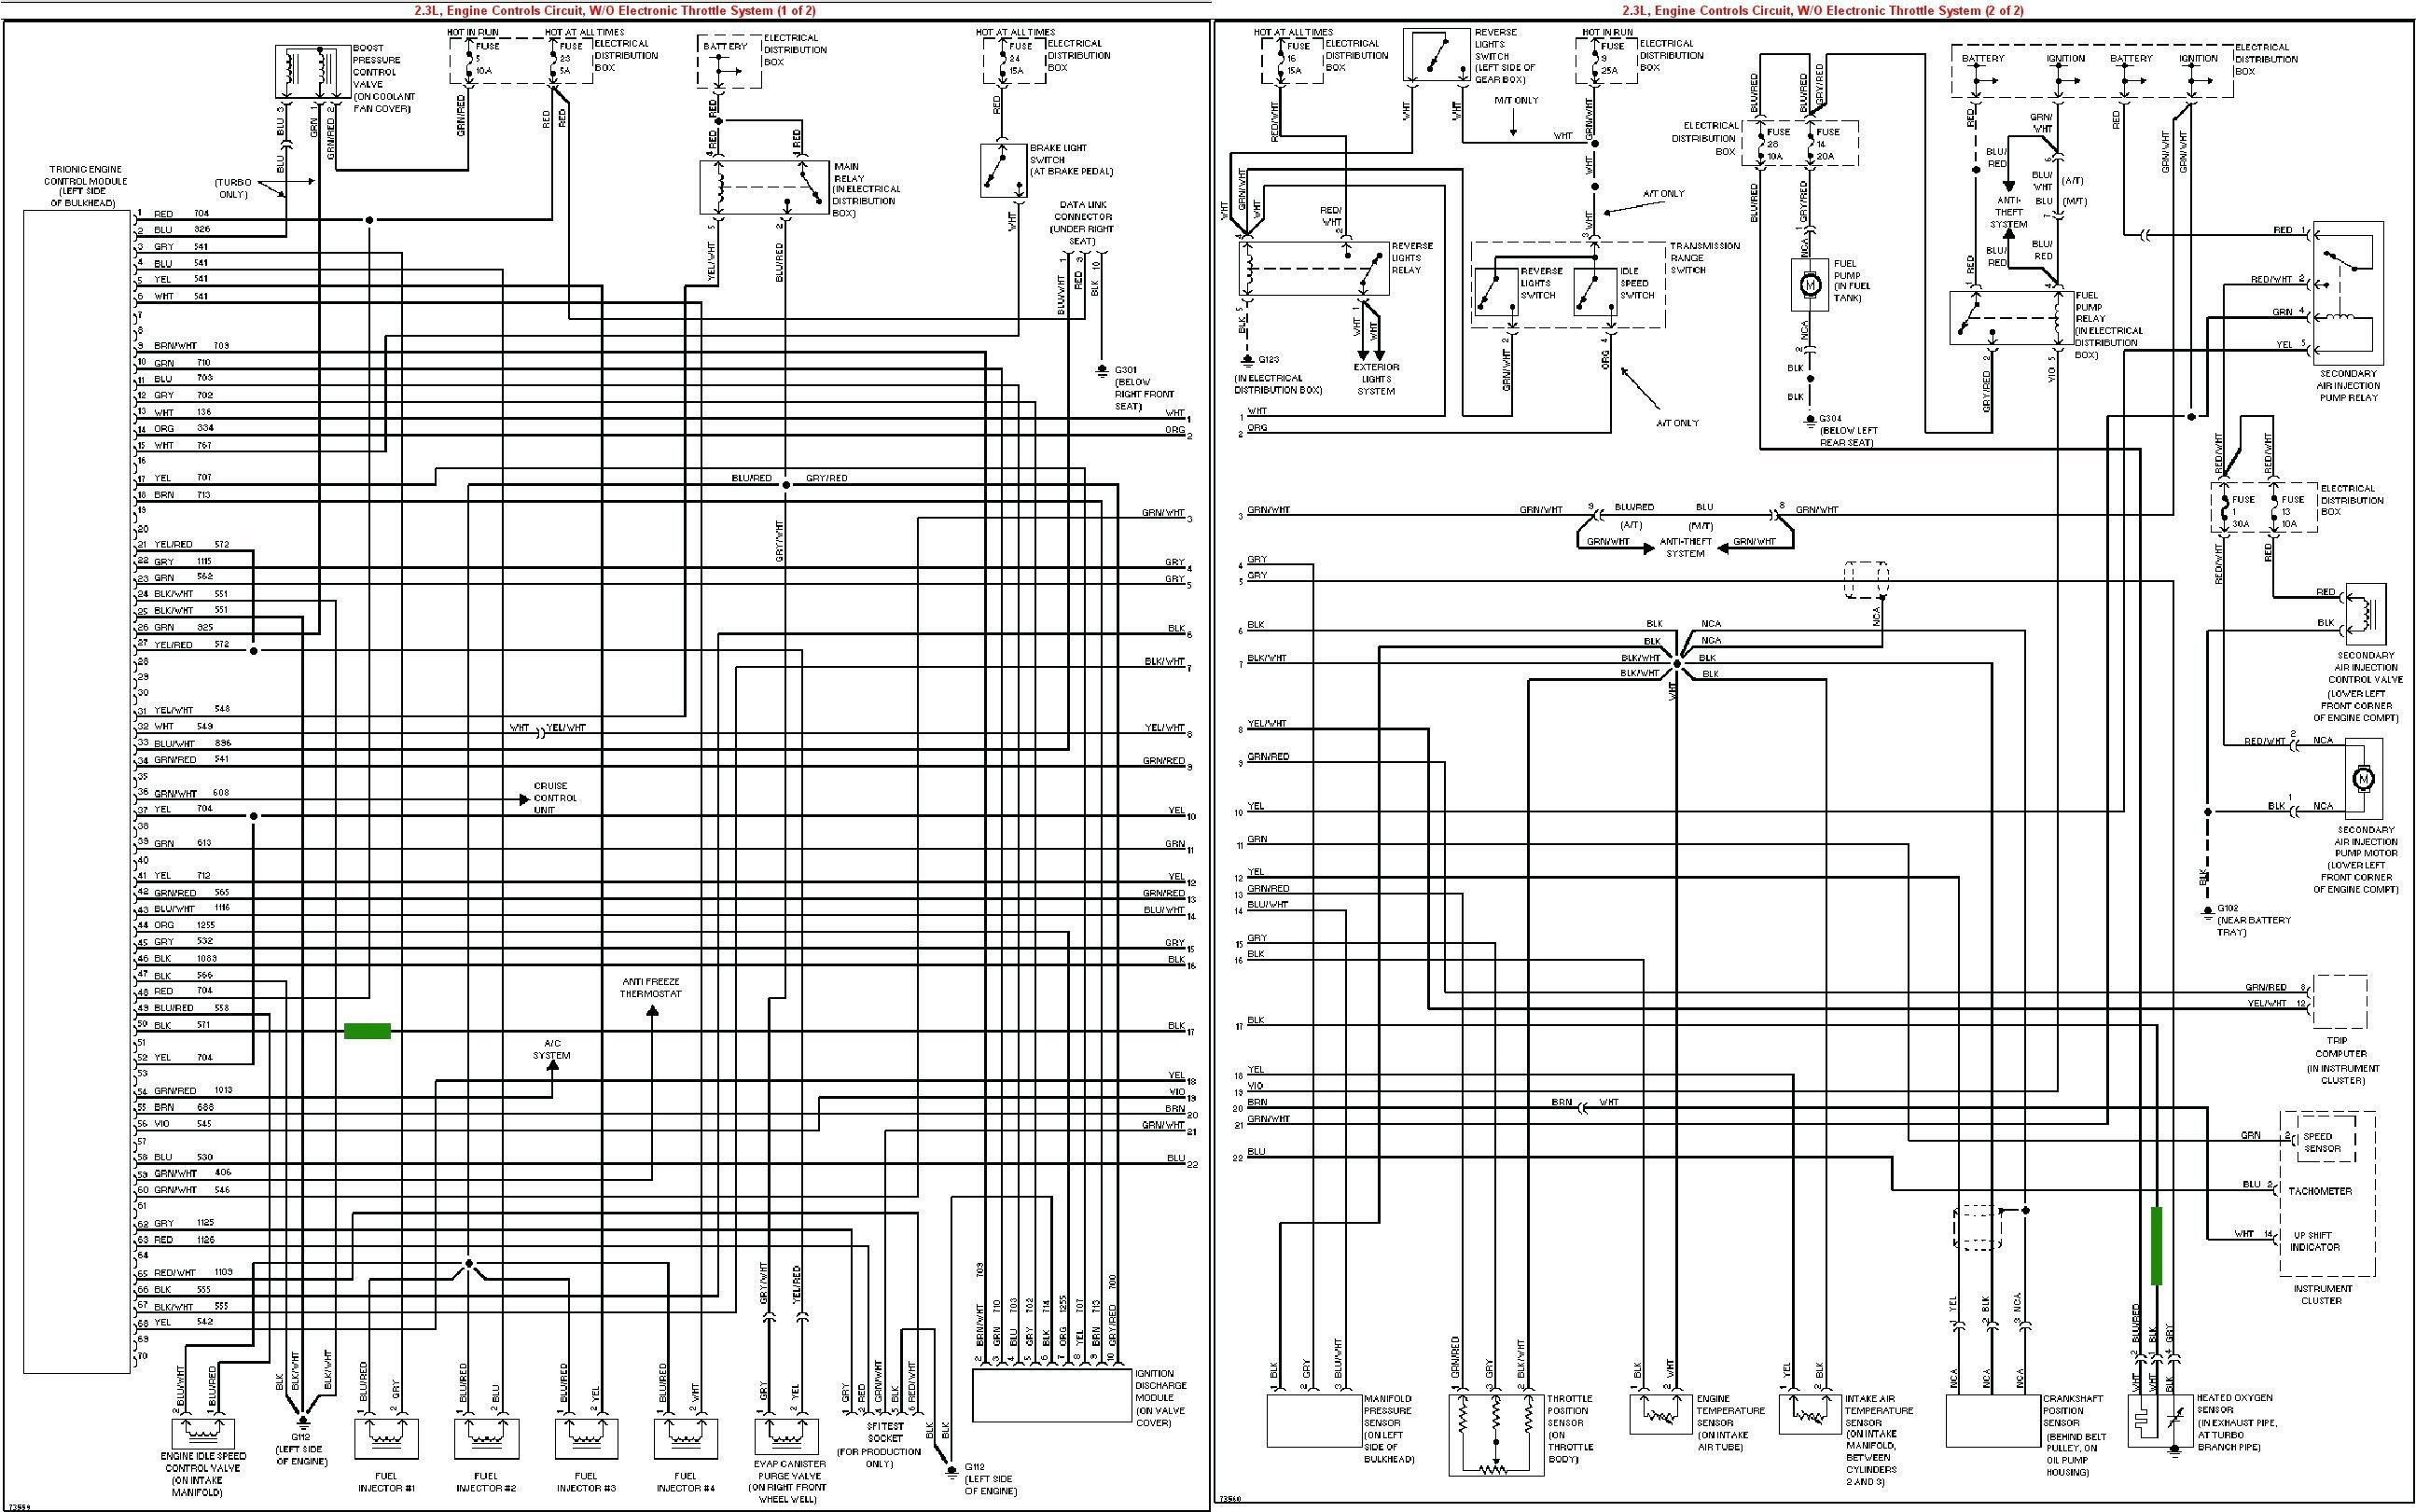 1999 Saab 9 5 Wiring Diagram Wiring Diagrams Site Dark Express Dark Express Geasparquet It